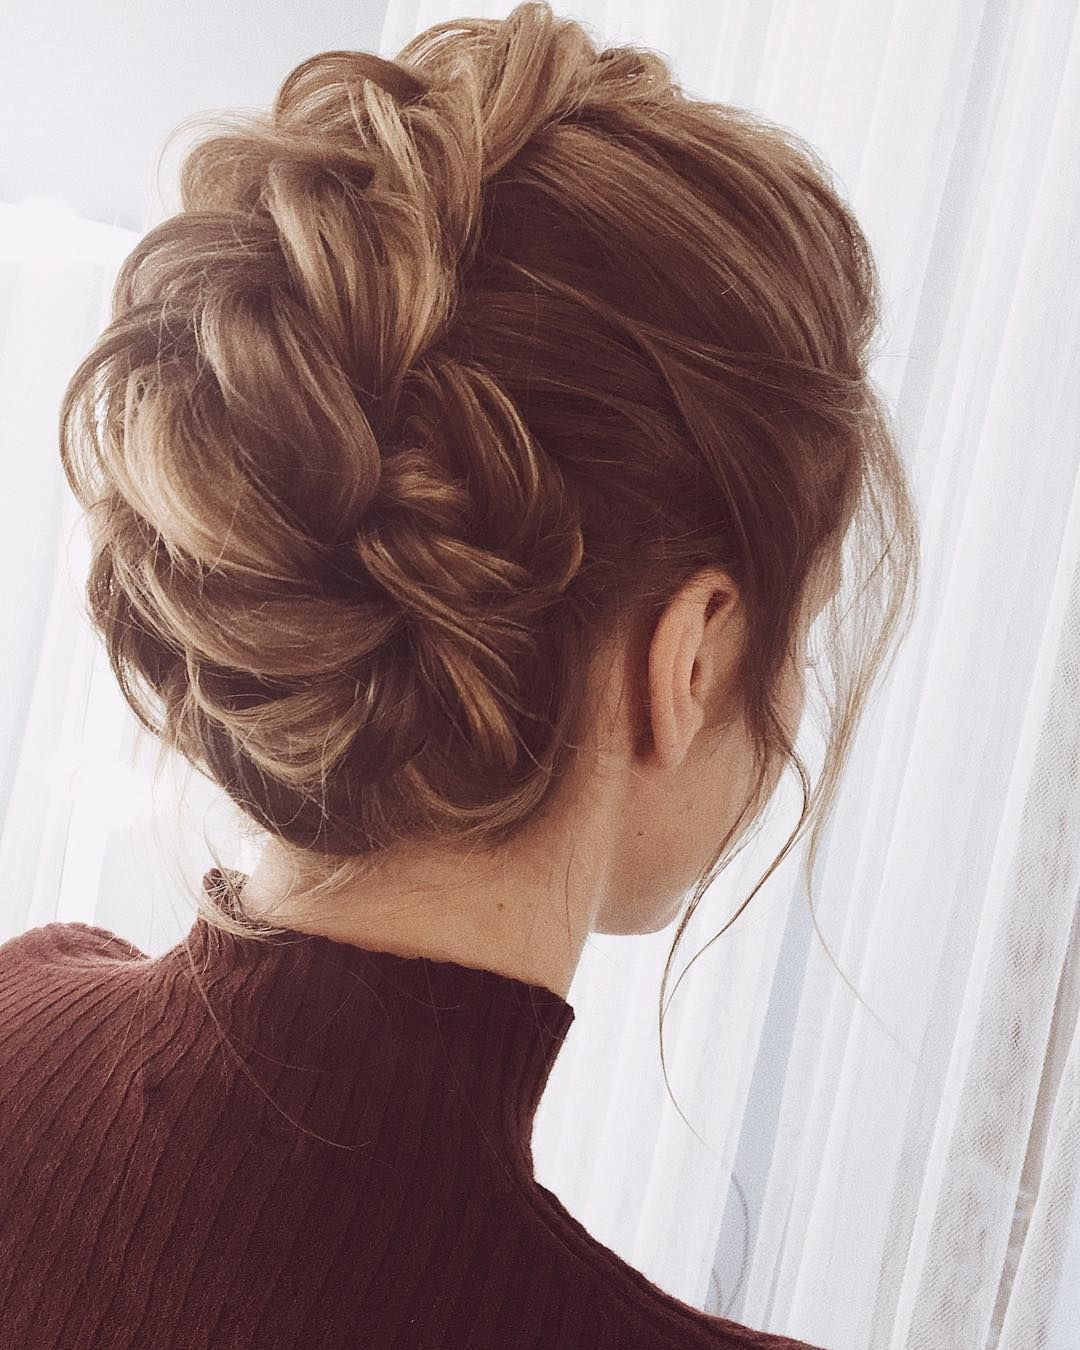 Prom Hairstyles Updos Unique Updo Hairstyle  High Bun Hairstyle Prom Hairstyles Wedding